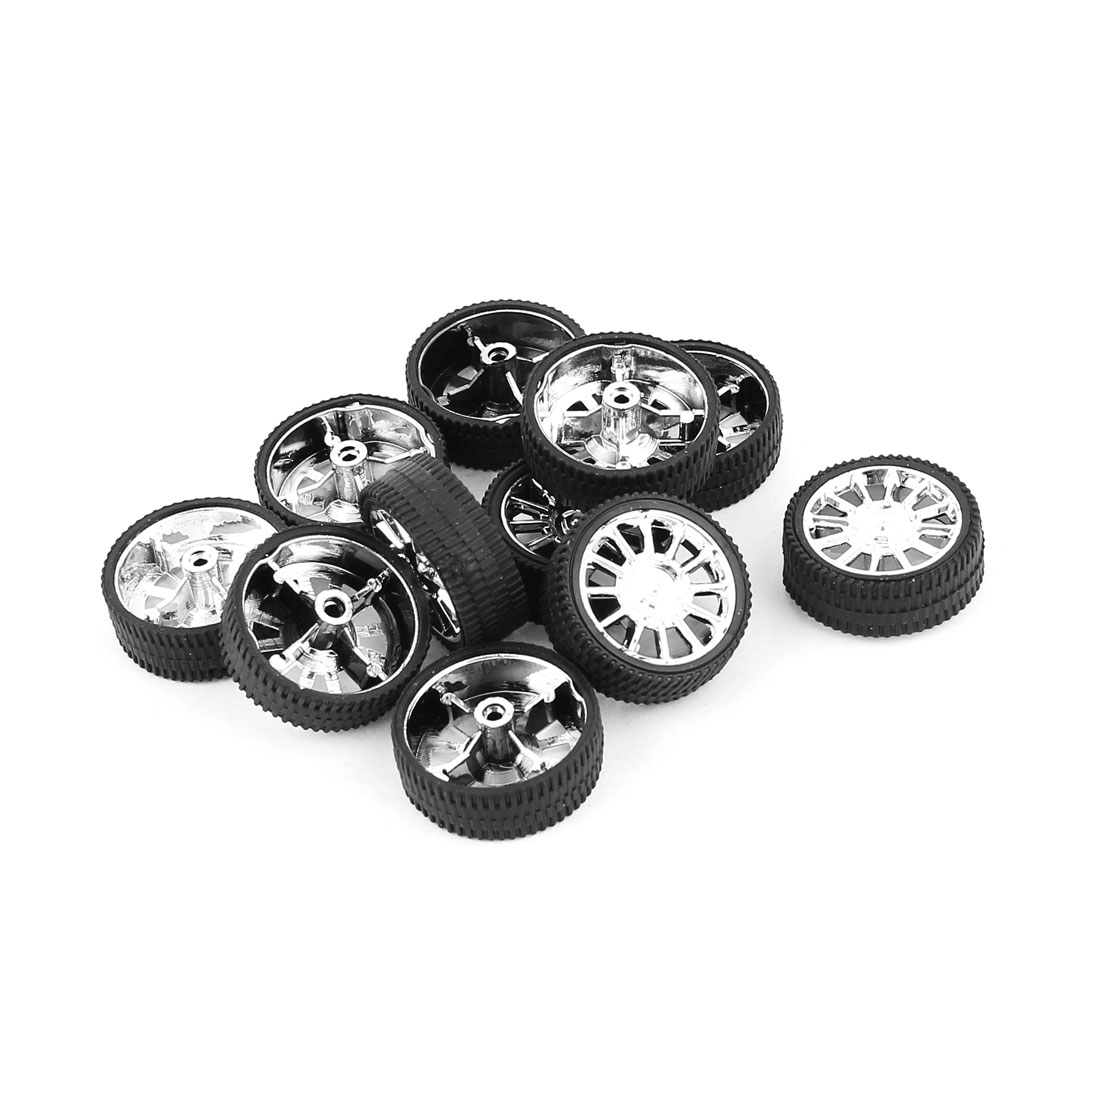 10 Pcs RC Toy Car Robot Vehicle Rubber Cover Wheel DIY 26mm Dia Rims Silver Tone Black